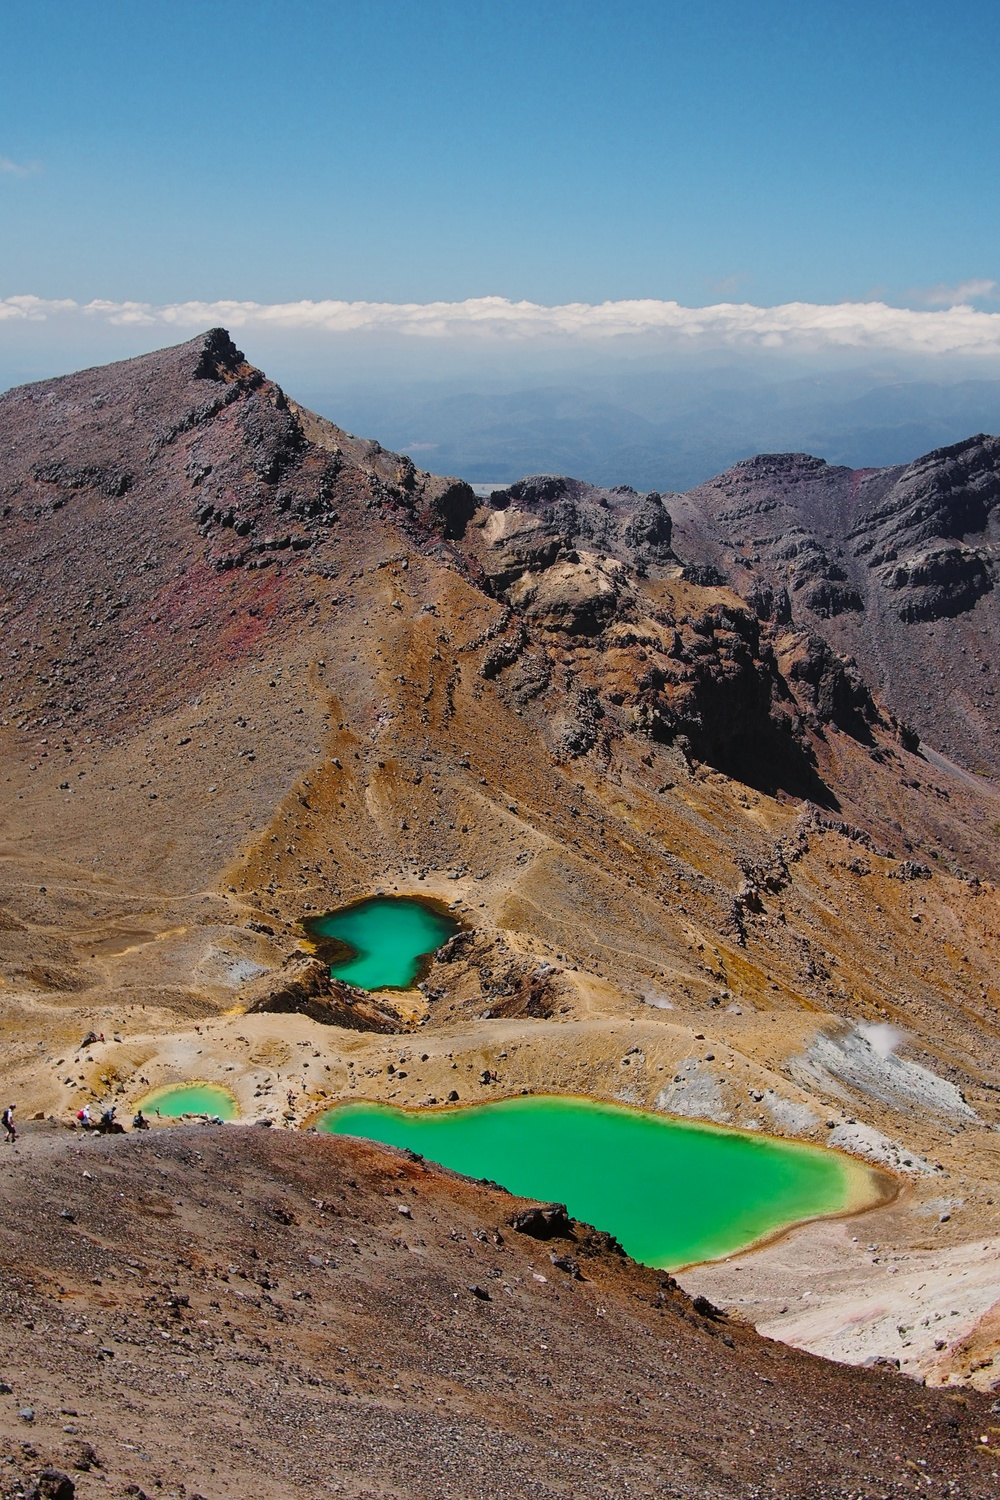 From Mount Ngauruhoe, we continued our hike across the Tongariro Crossing and arrived to the Emerald Lakes.